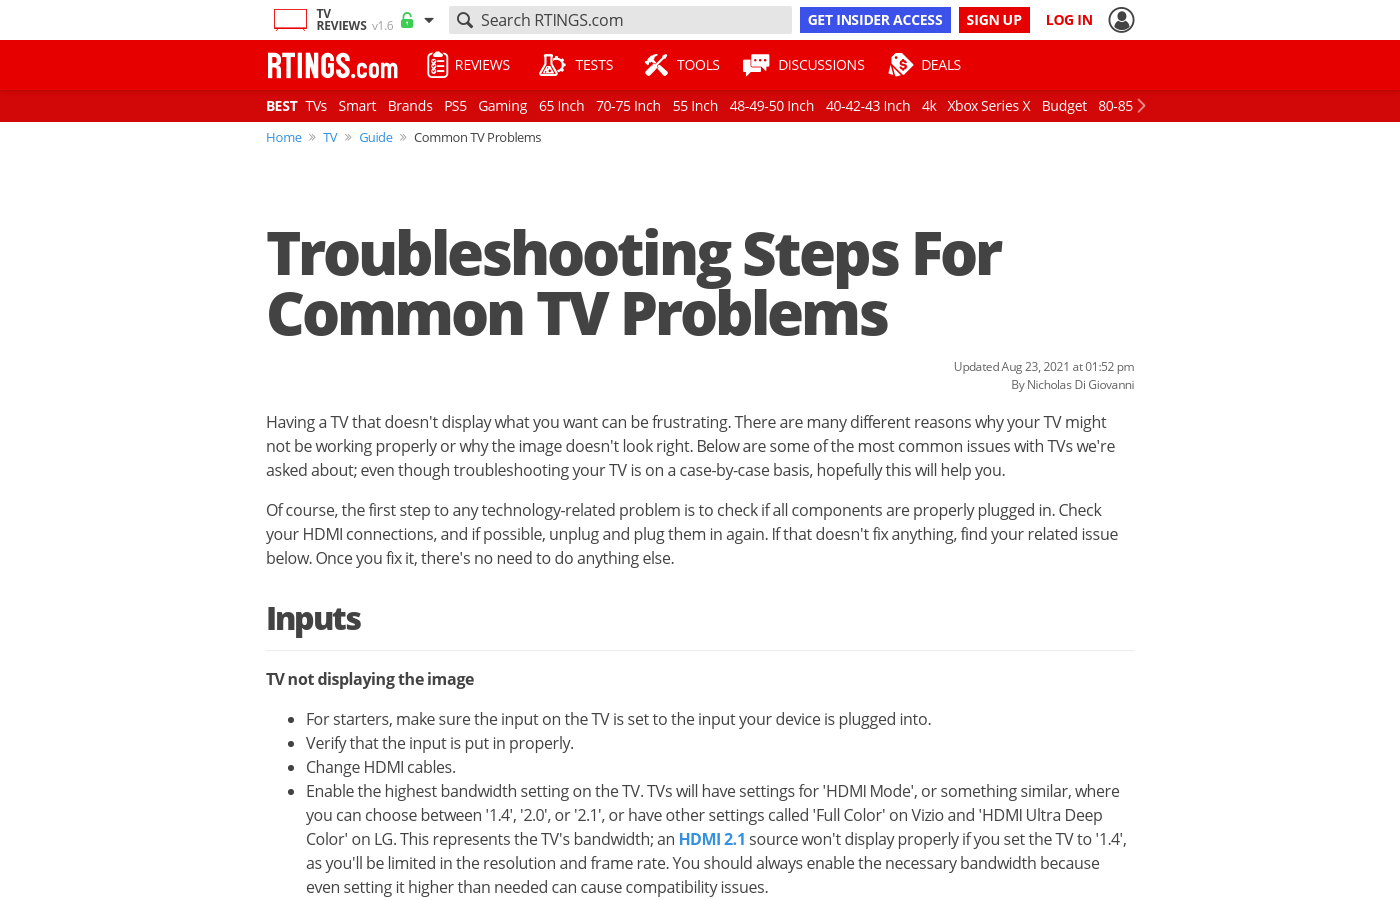 Troubleshooting steps for common TV problems - RTINGS com